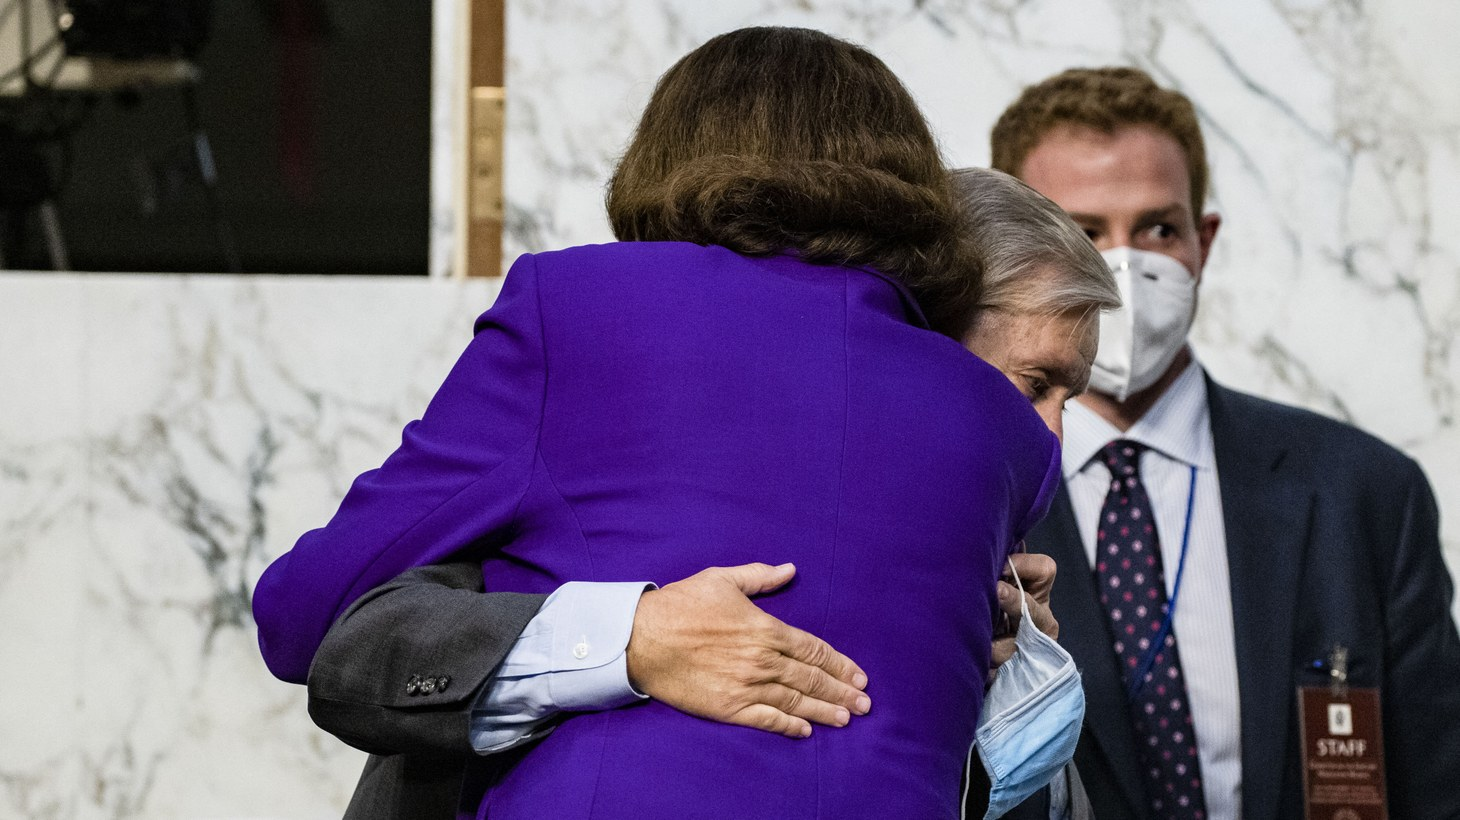 Ranking Member Diane Feinstein (D-CA) (R) and Chairman Lindsey Graham (R-SC) (L) hug as the confirmation hearings for Supreme Court nominee Judge Amy Coney Barrett come to a close on Capitol Hill on October 15, 2020 in Washington, DC, USA. Barrett was nominated by President Donald Trump to fill the vacancy left by Justice Ruth Bader Ginsburg who passed away in September.